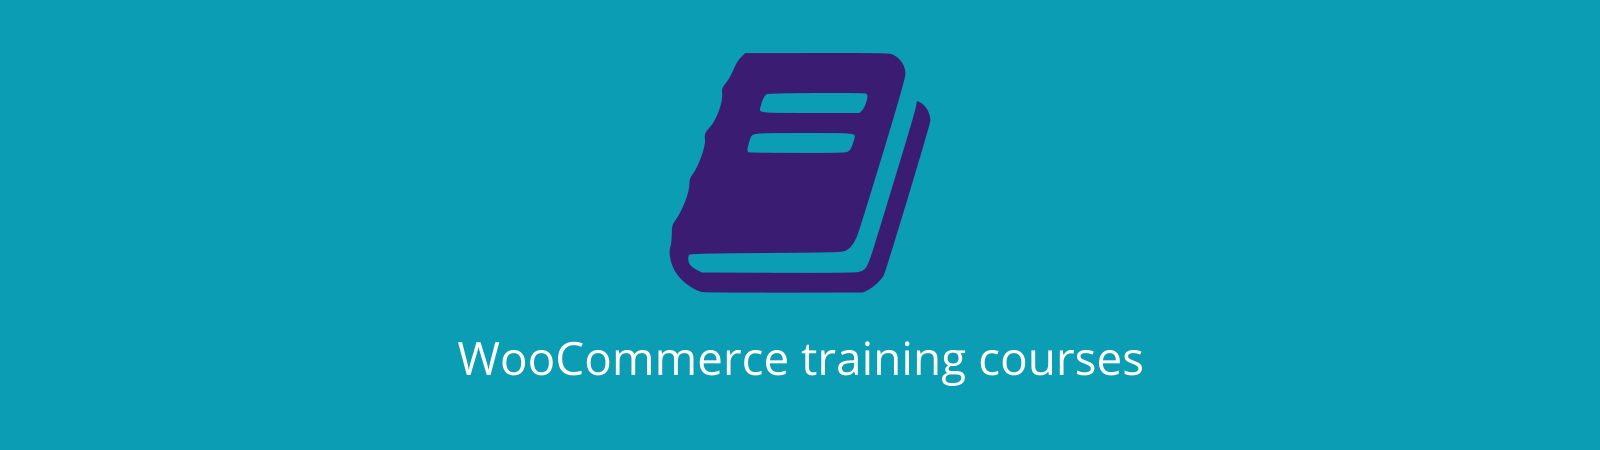 WooCommerce training courses in the UK